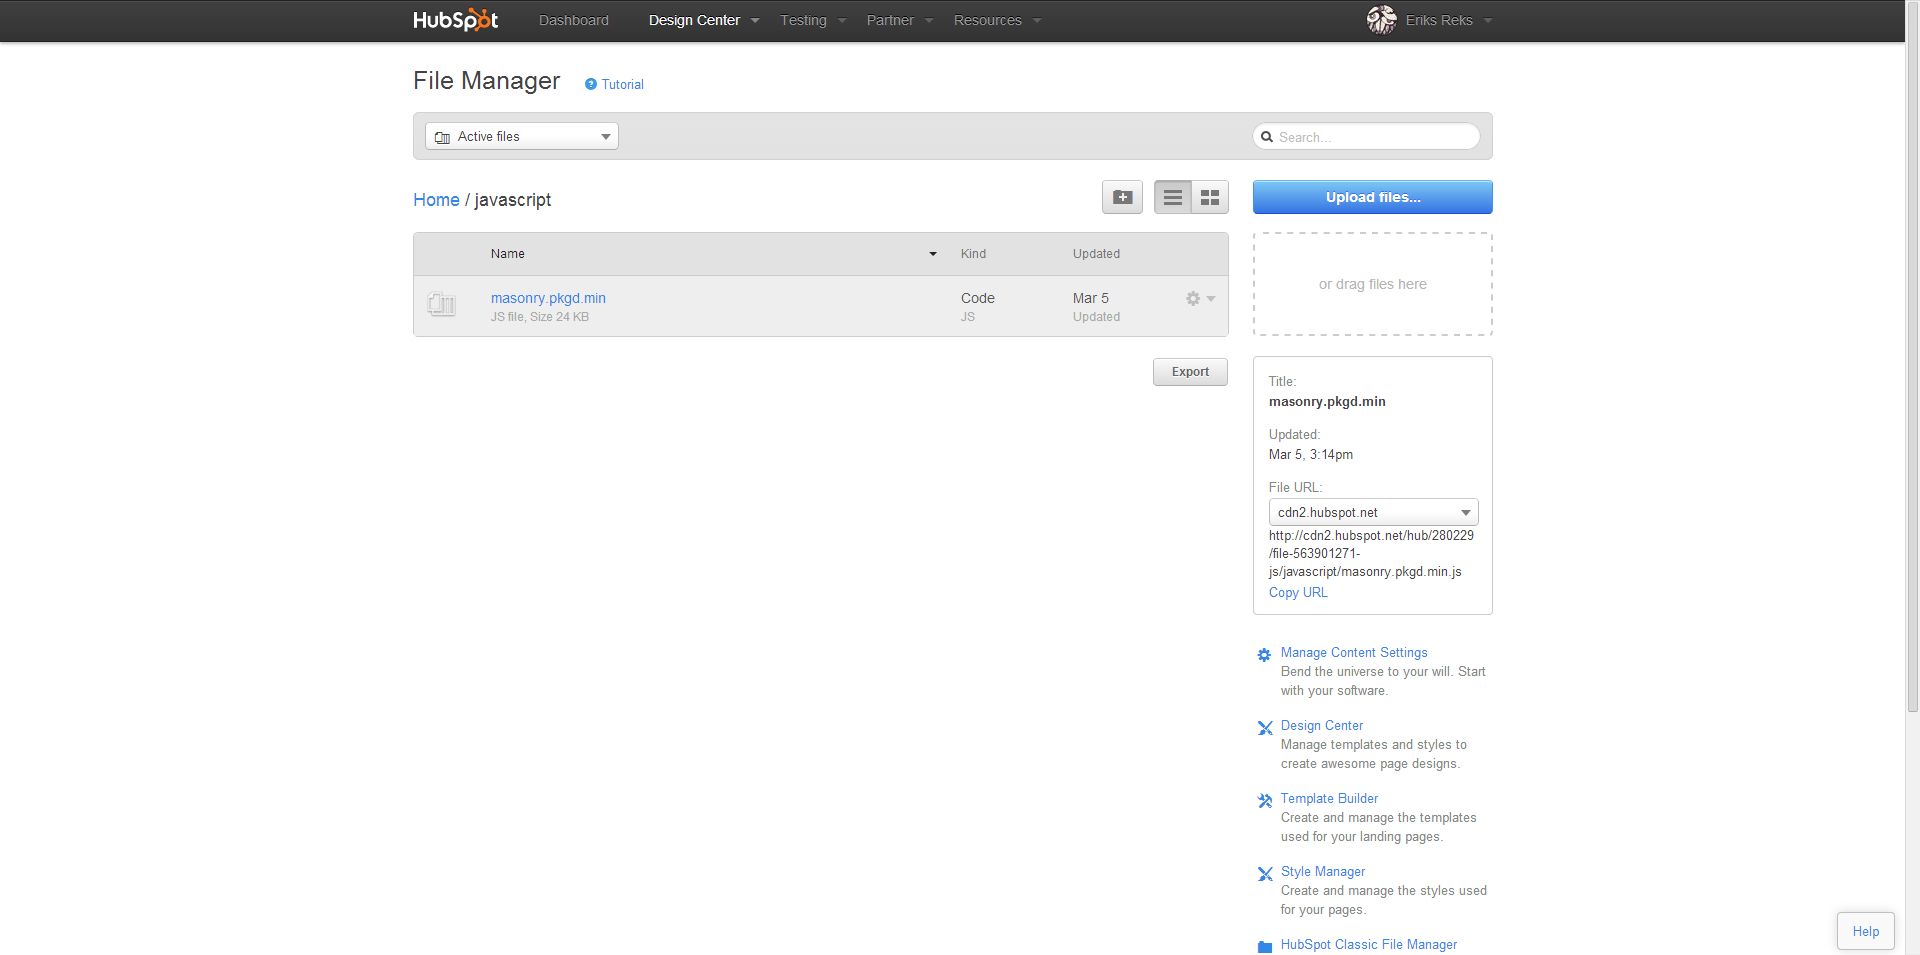 2014-03-19_11_16_29-File_Manager___HubSpot